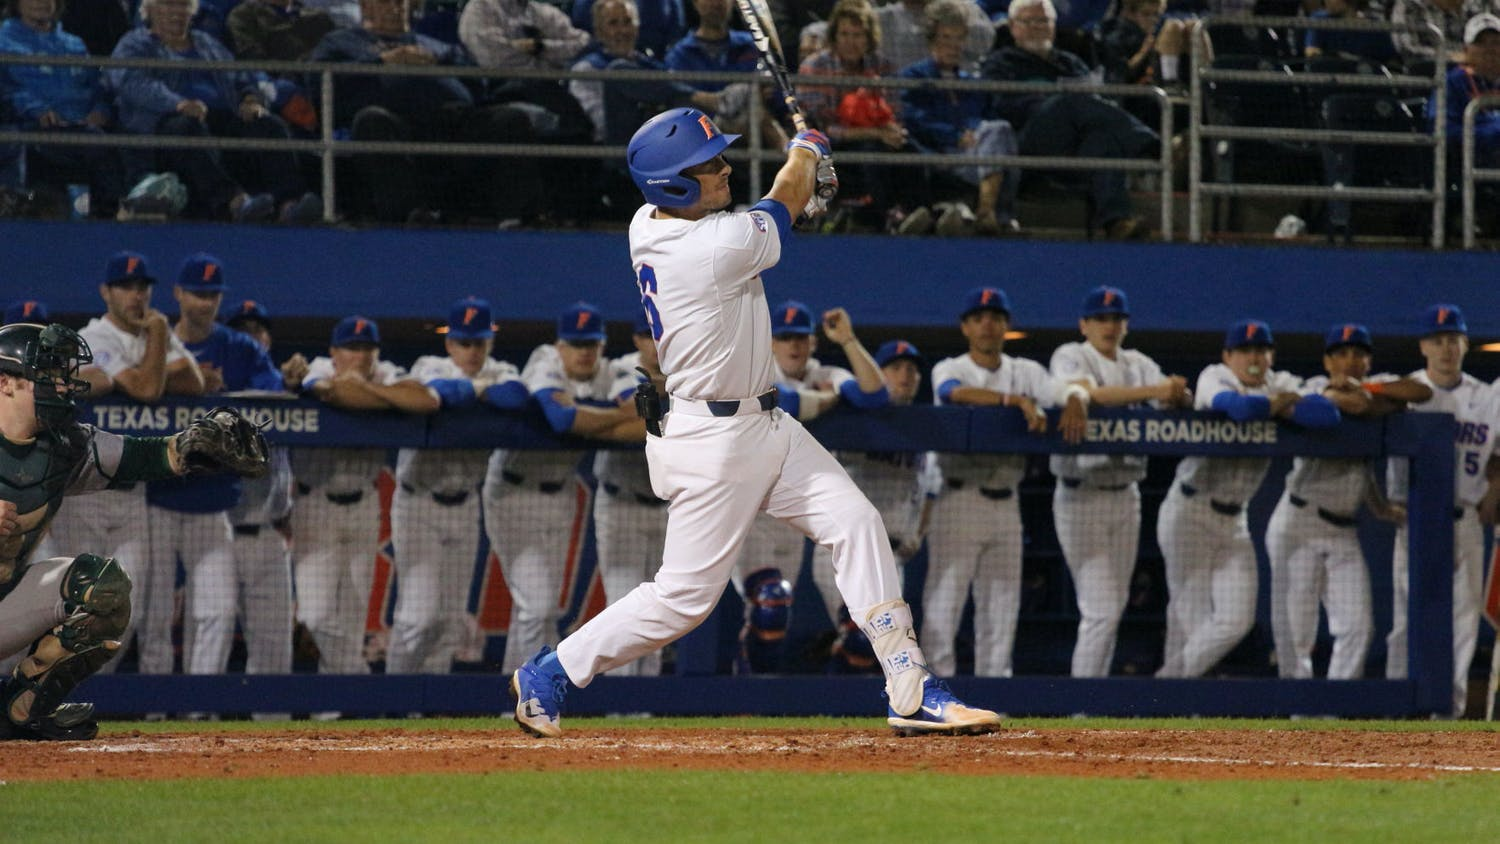 Third baseman Jonathan India was taken fifth overall by the Cincinnati Reds in the 2018 MLB Draft. He led the SEC in on-base percentage (.497), slugging percentage (.717) and home runs. India was selected as the conference's Player of the Year.